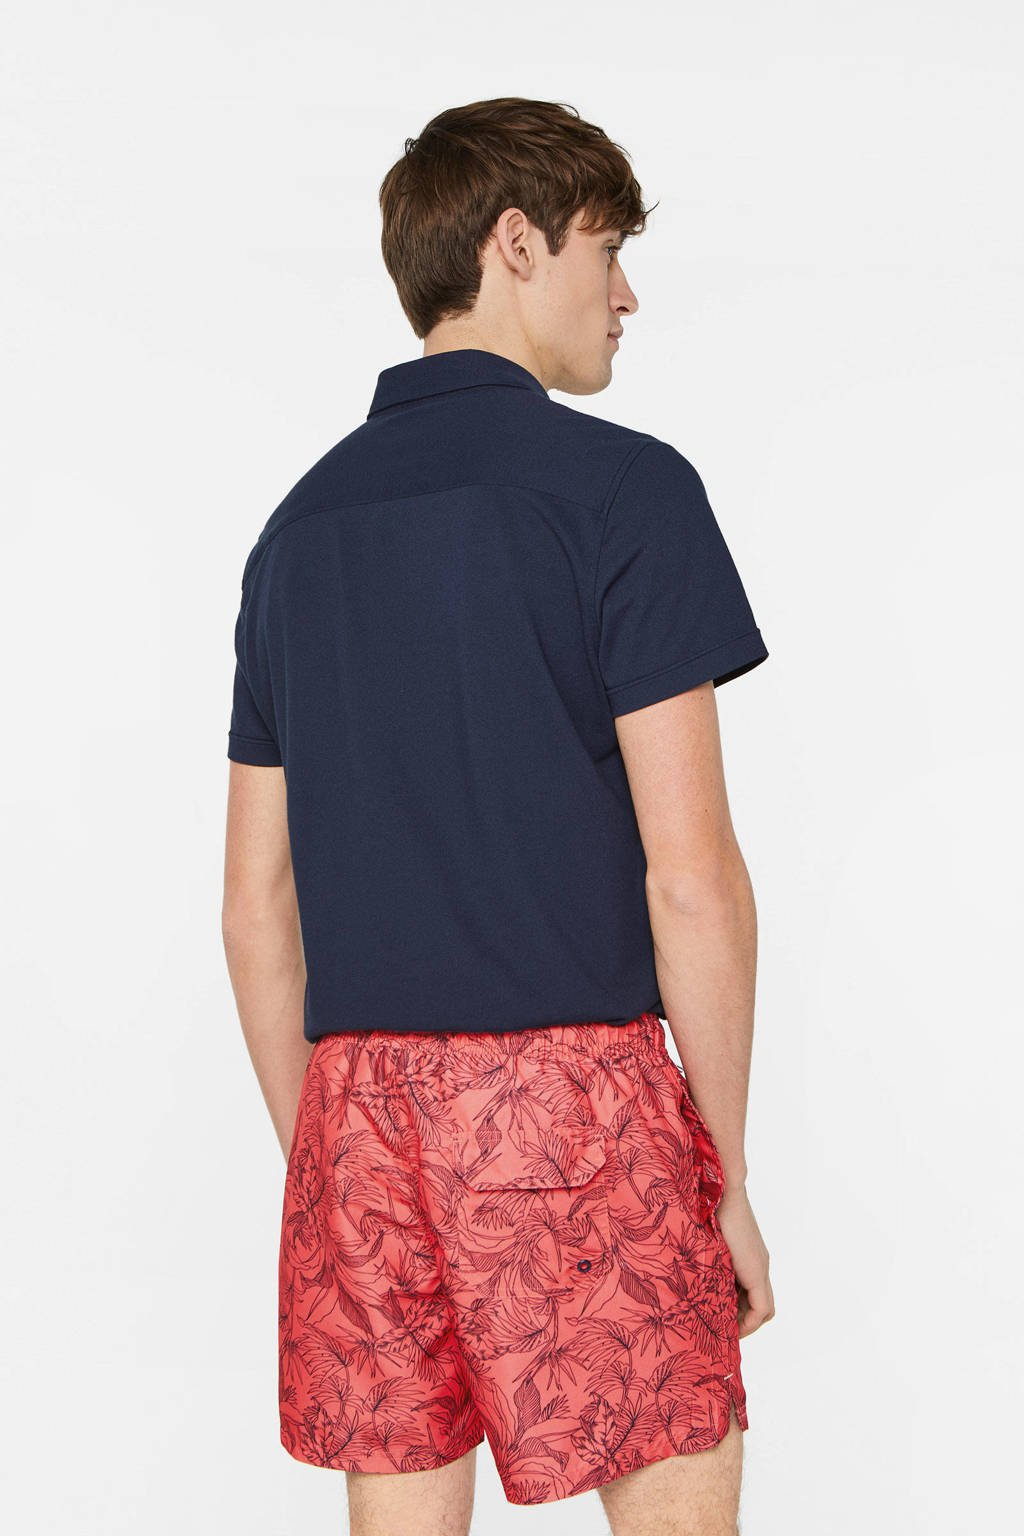 WE Fashion zwemshort met all over print rood, Rood/donkerblauw